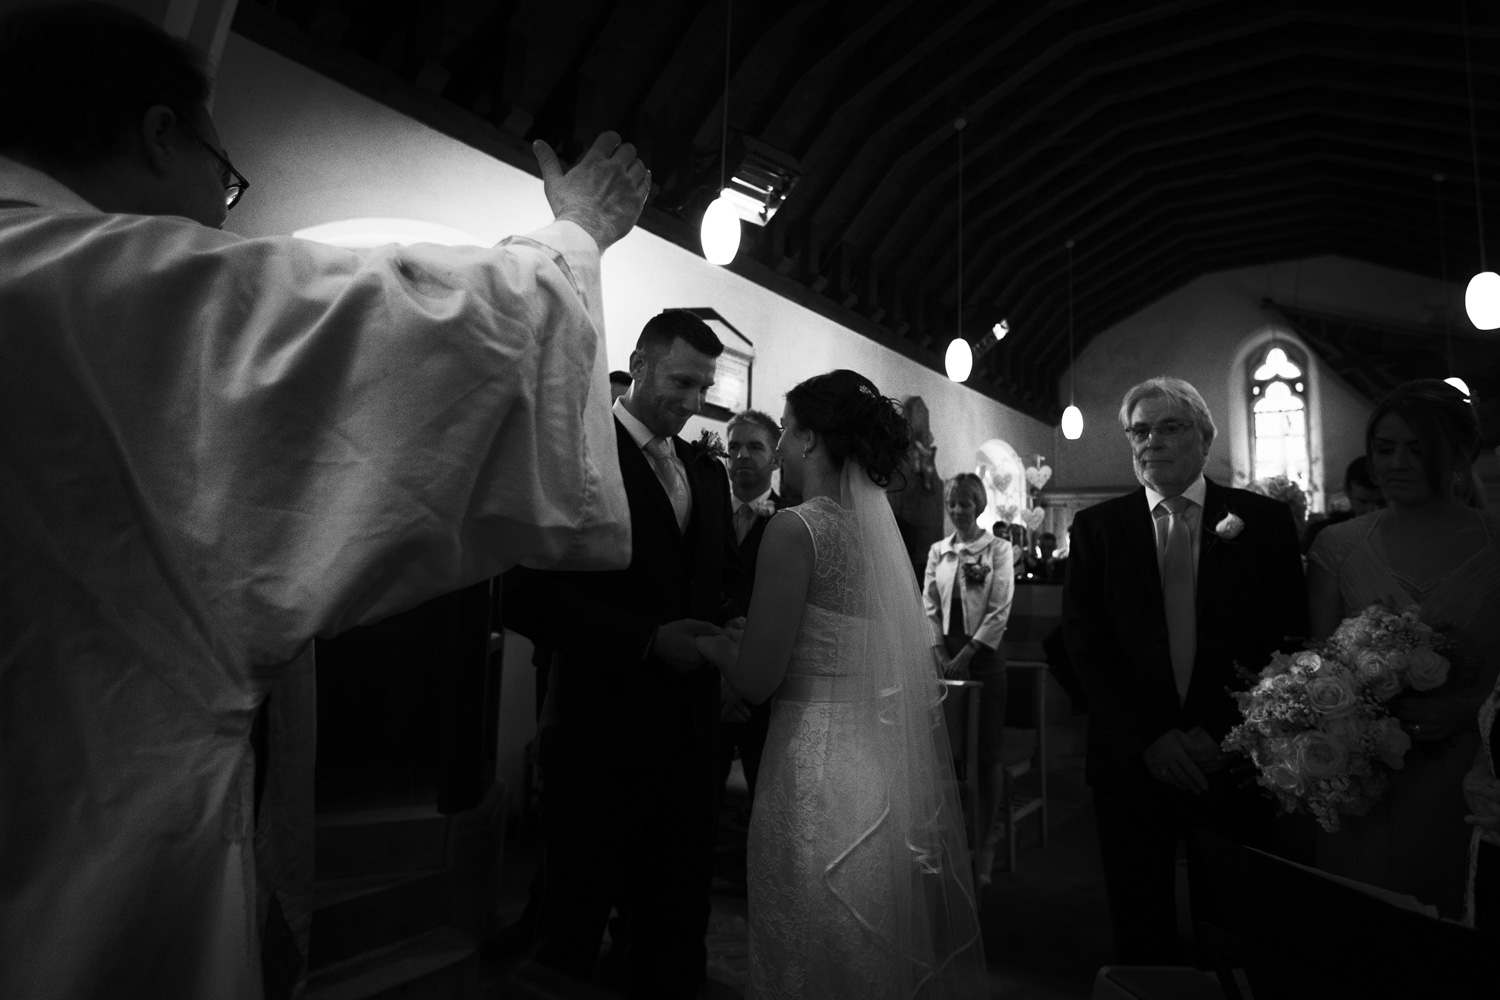 South-Wales-Wedding-Photographer-Mark-Barnes-Newport-The-old-barn-inn-Ginette-and-Lewis-blog-18.jpg